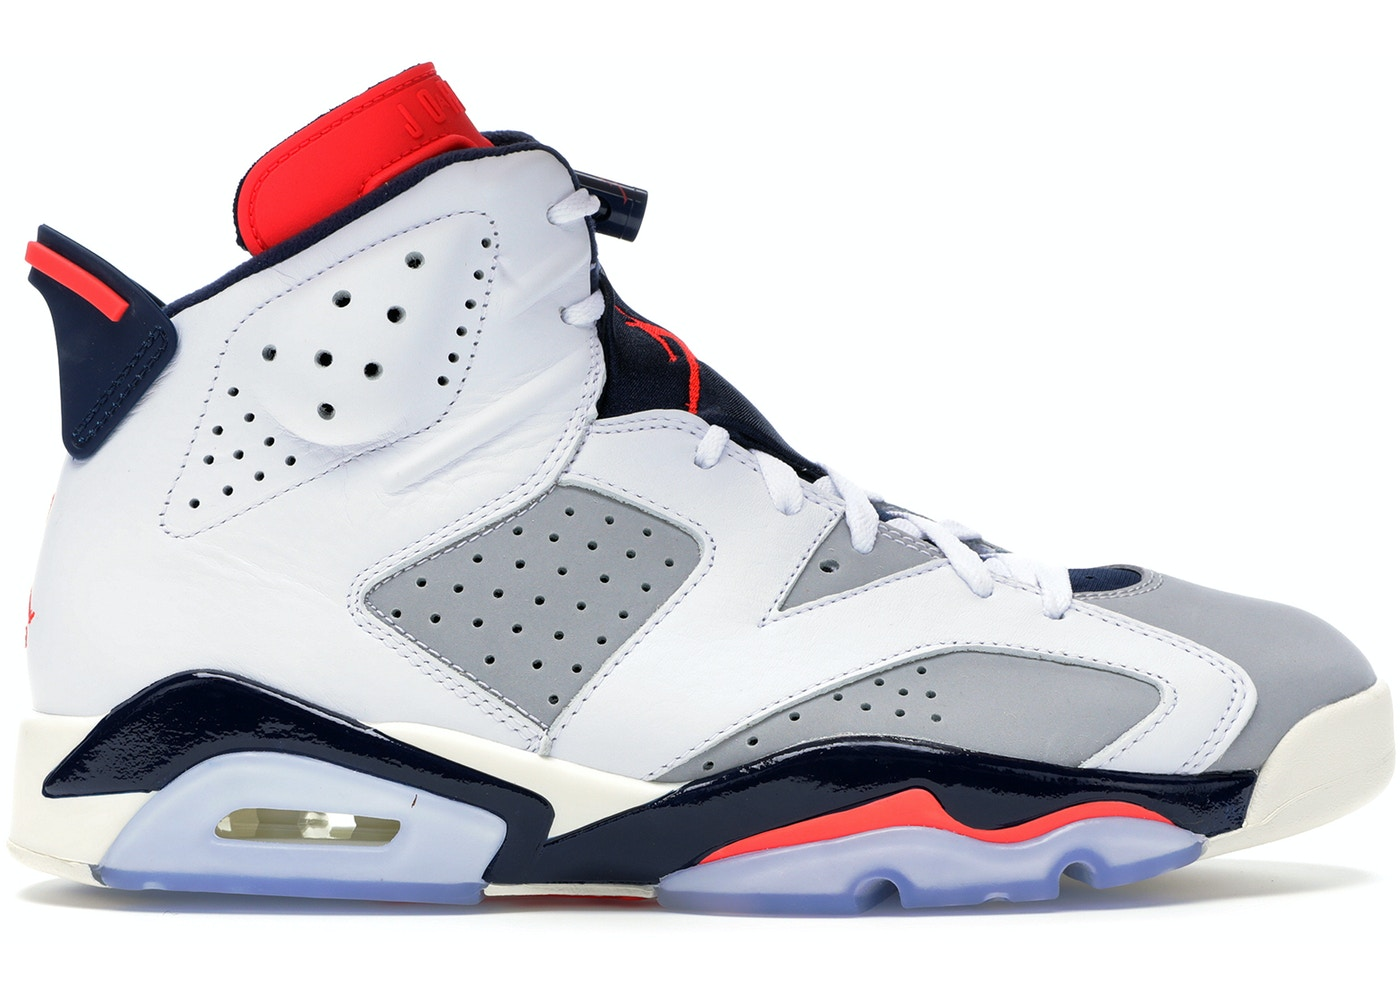 Air Jordan Shoes - Most Popular da8f18d0e2